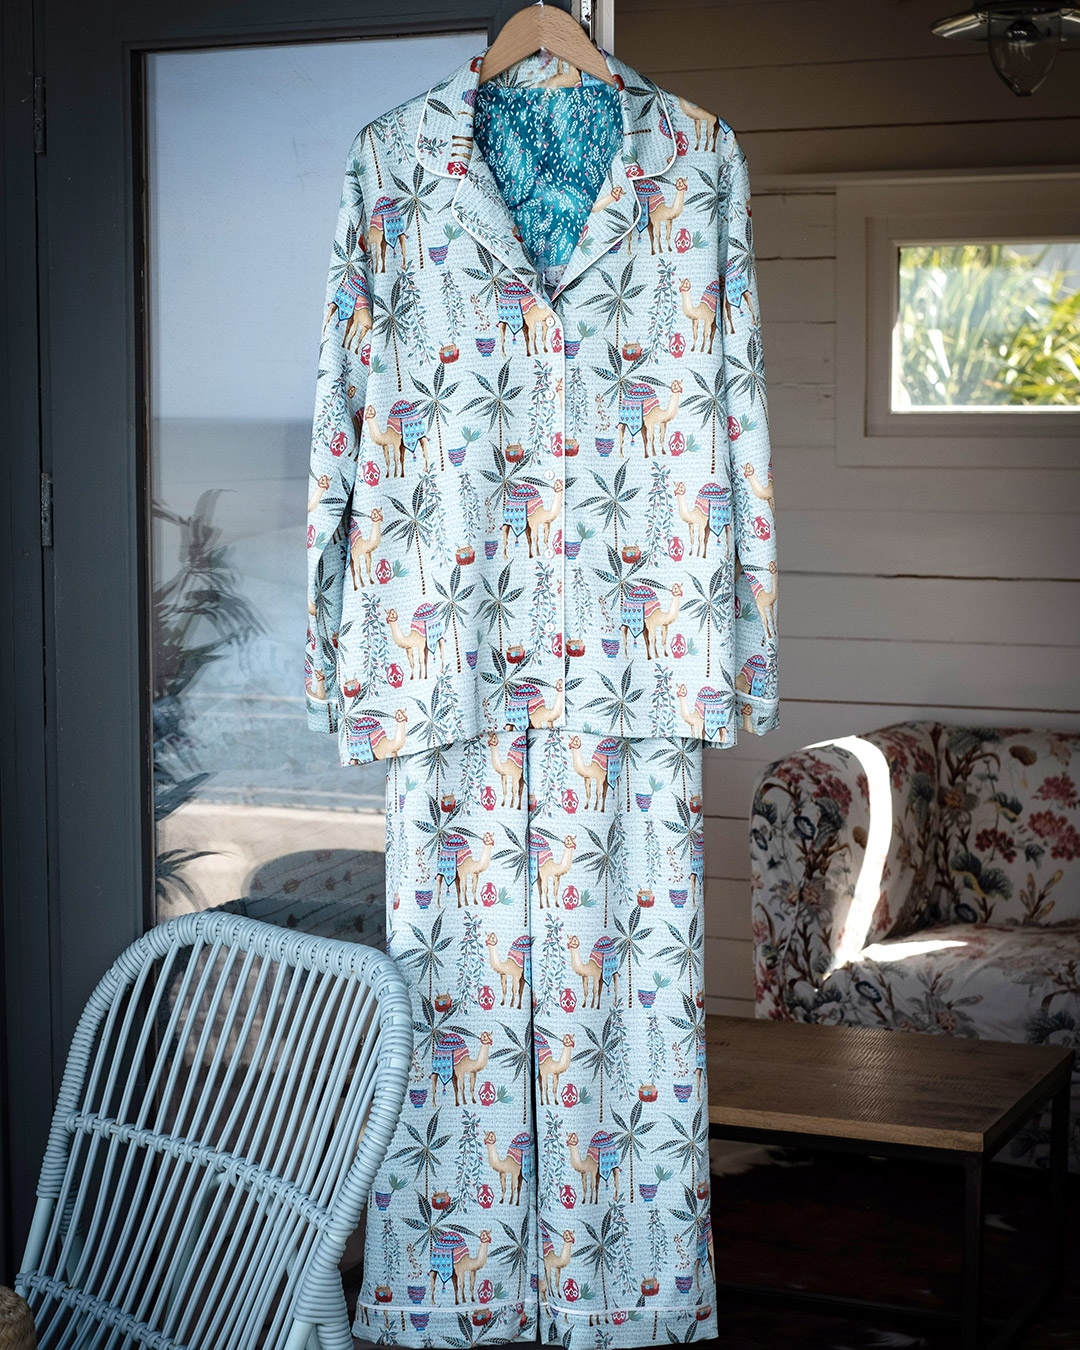 Lounge in style in Carolyn Donnelly Eclectic's new Moroccan printed nightwear at Dunnes Stores, the perfect late summer pick me up.